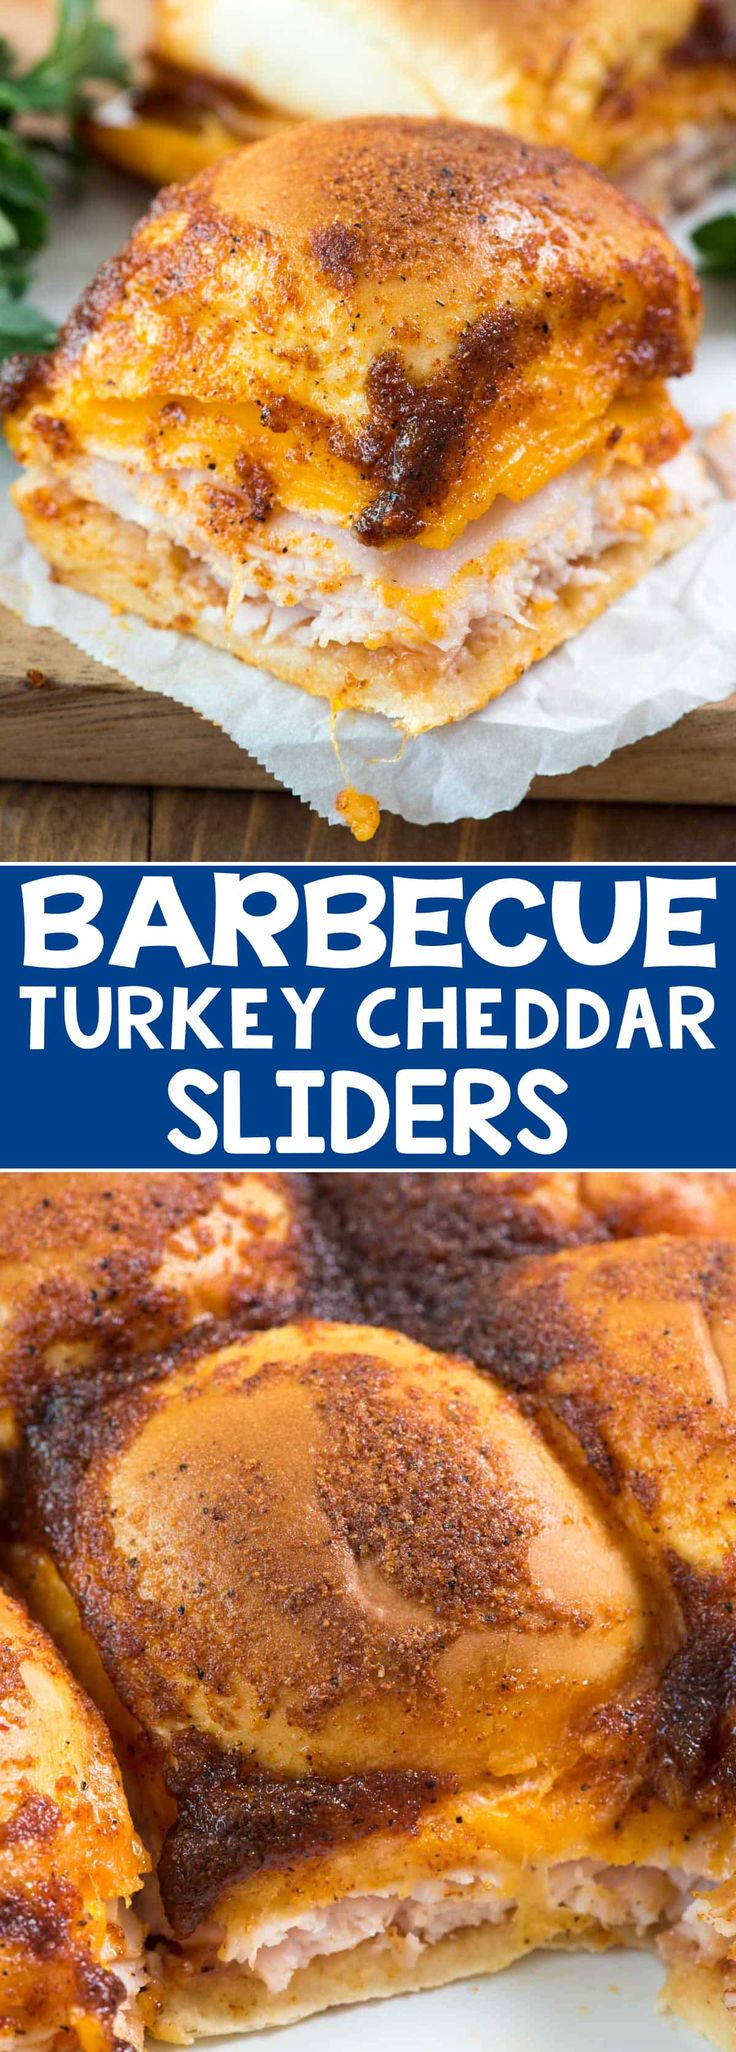 BBQ Turkey Cheddar Sliders - this easy slider recipe is full of turkey, cheese, and barbecue flavoring! The topping tastes JUST like a BBQ chip!